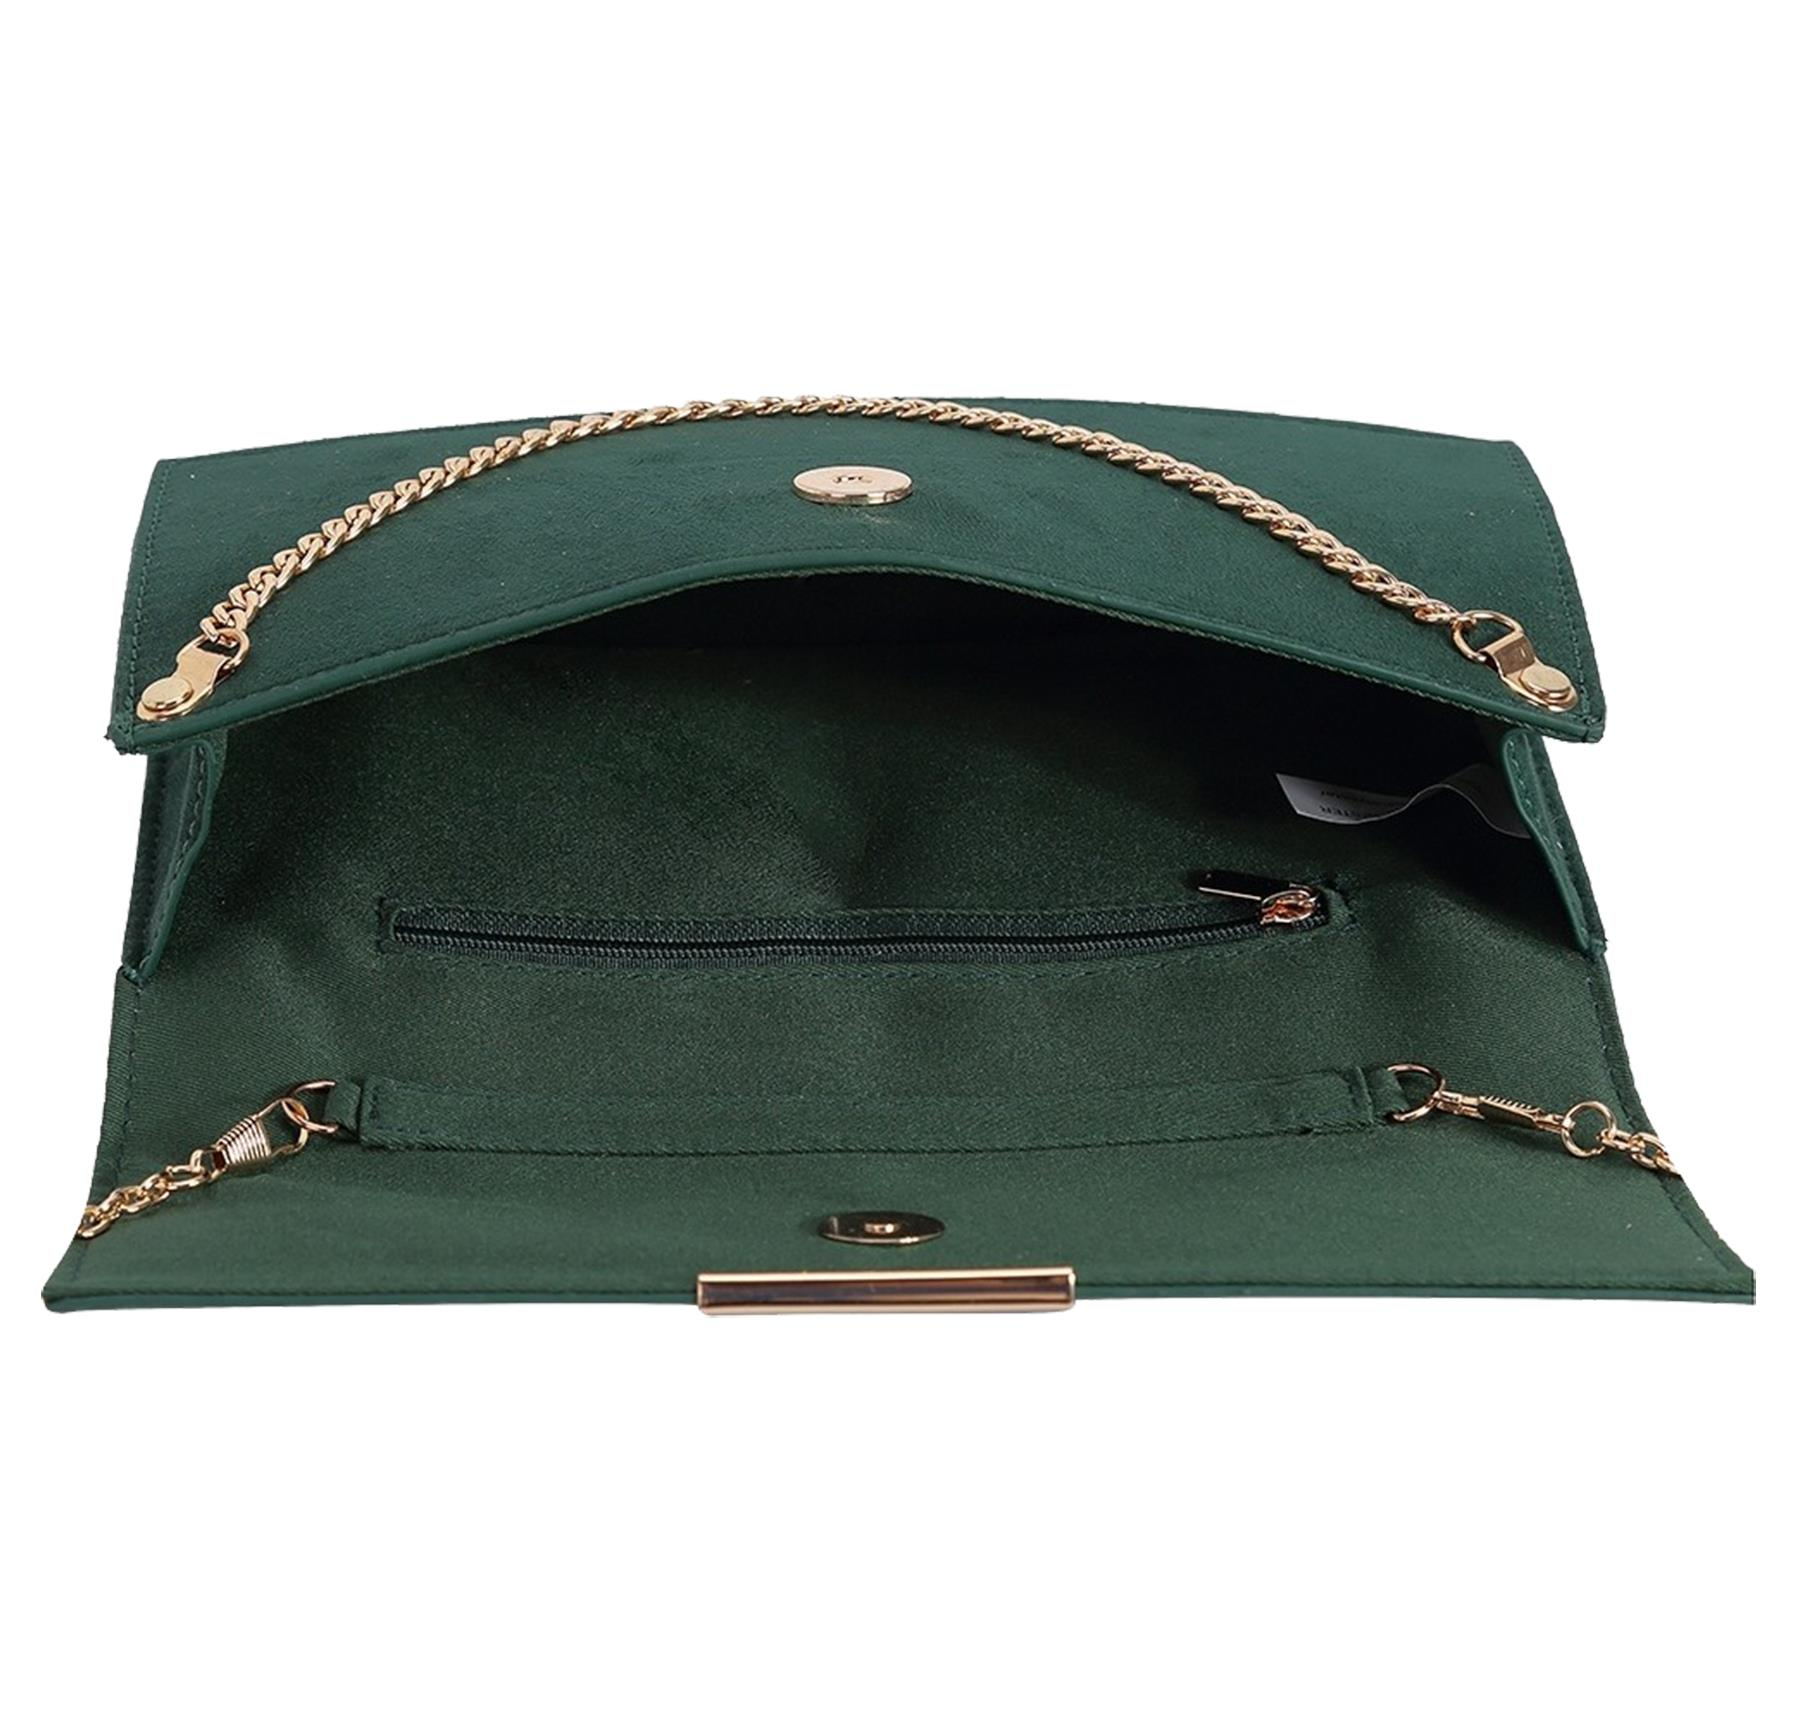 New-Synthetic-Suede-Metallic-Trim-Chain-Detail-Evening-Classic-Clutch-Bag thumbnail 7